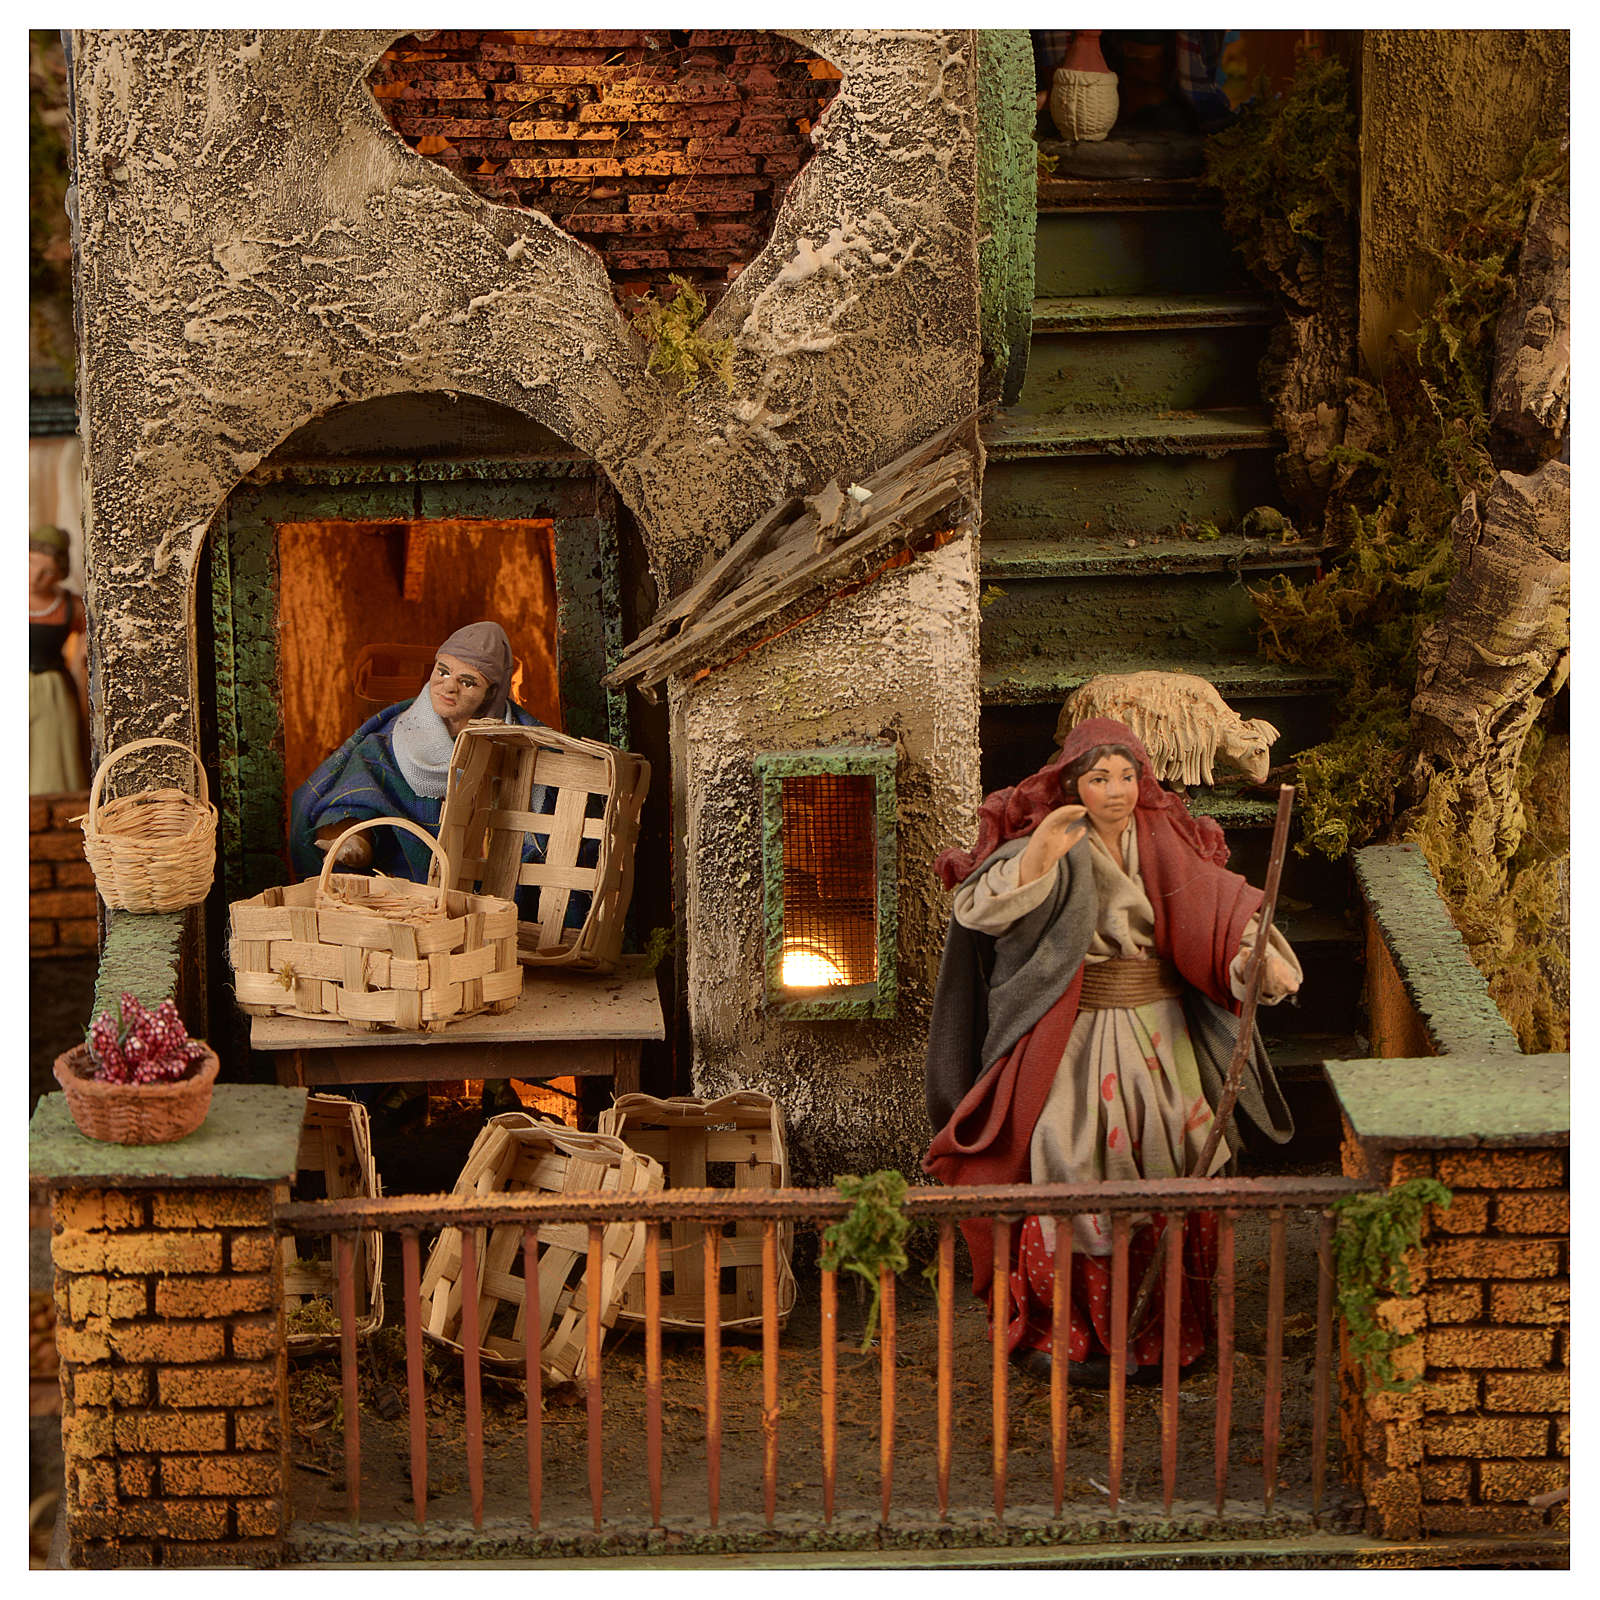 Bourgade crèche Naples décor complet Naples 4 modules 120x400x100 cm 125 santons de 14 cm 20 mouvements 4